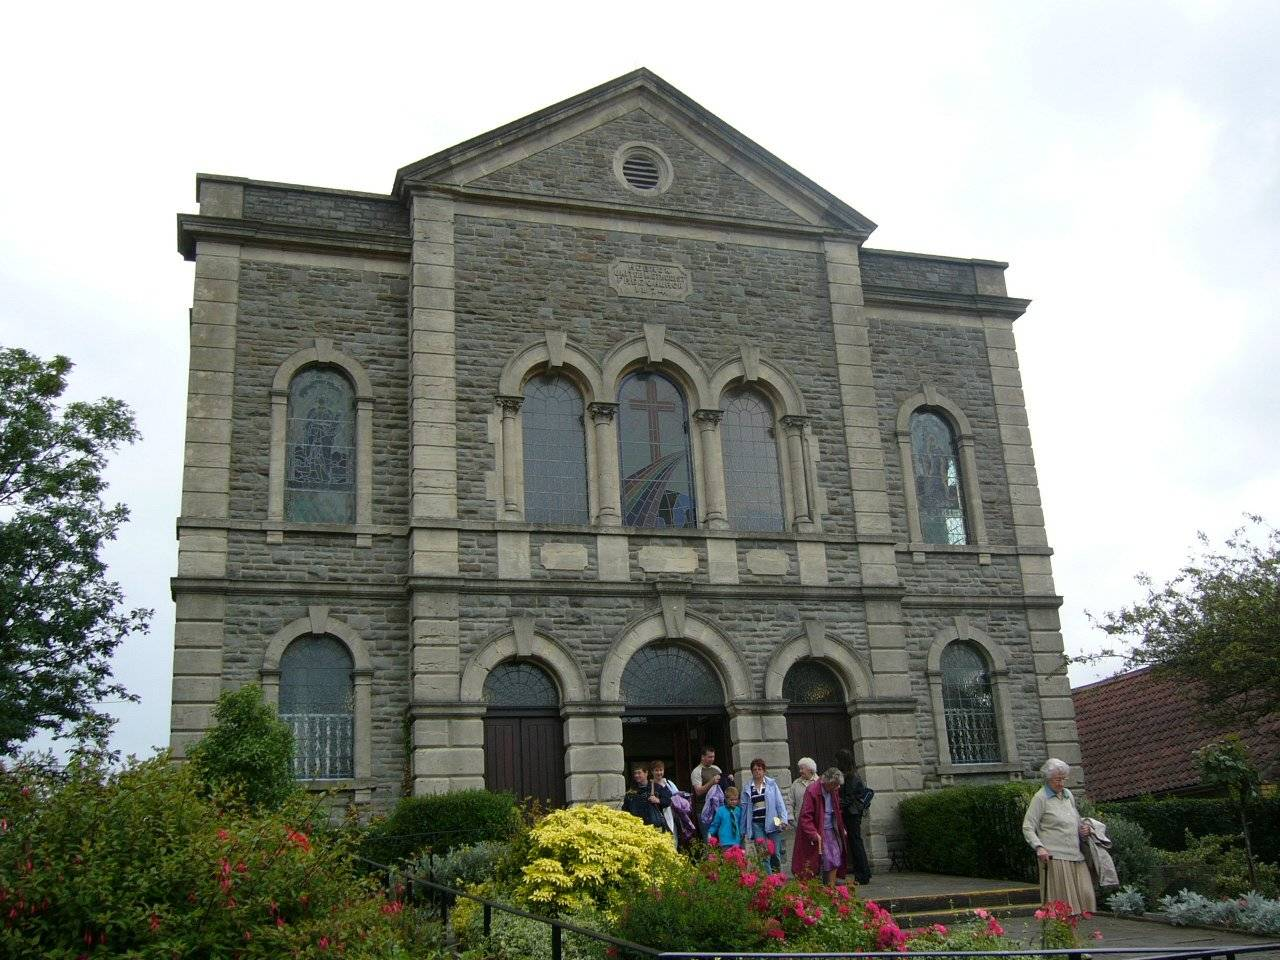 Staple Hill Methodist Church, 131 High Street, Staple Hill, Bristol, S Gloucs, BS16 5HQ, UK